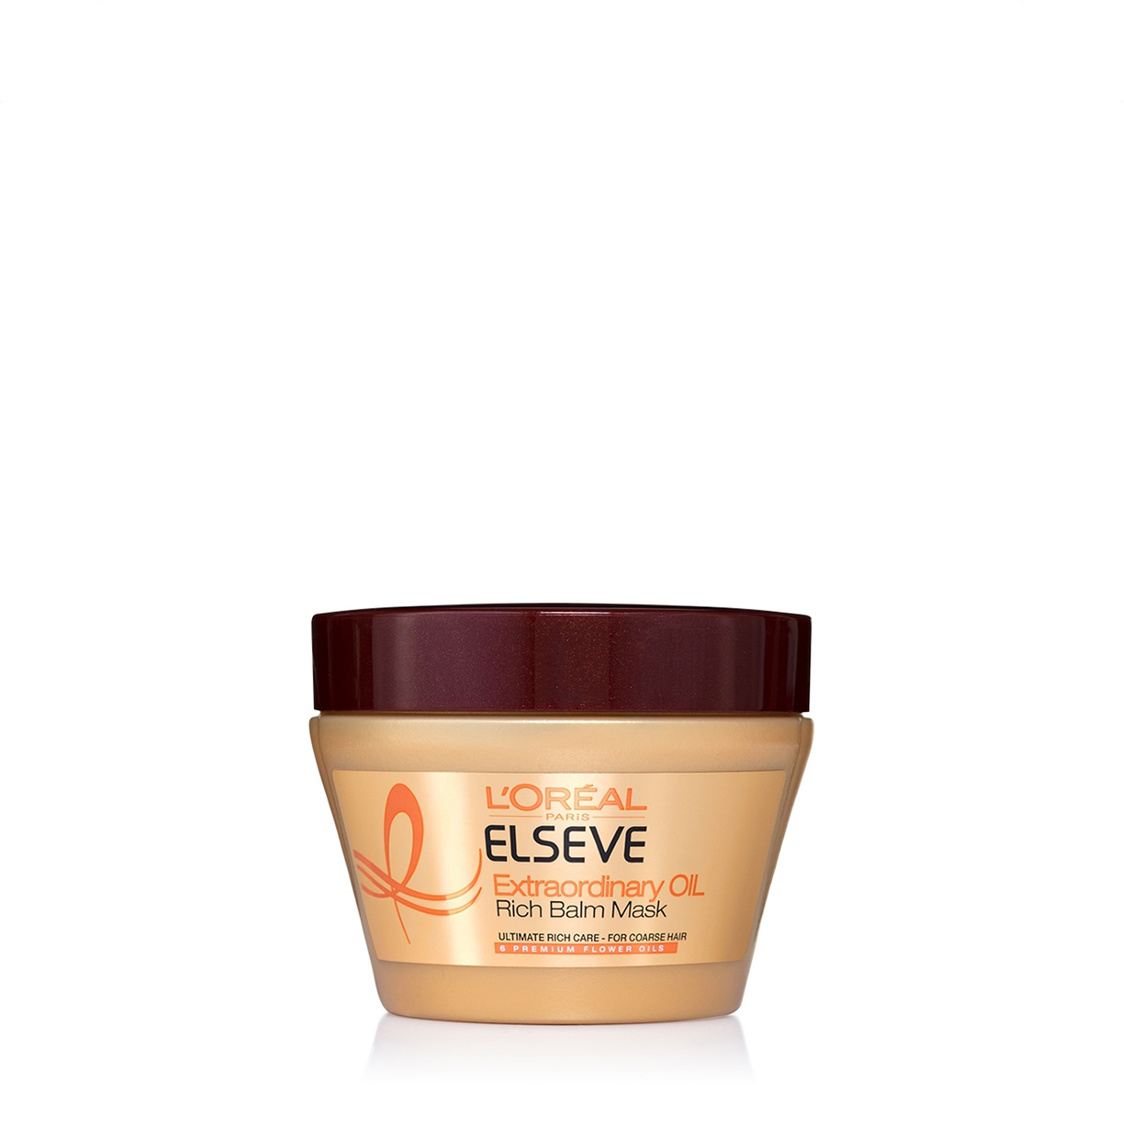 ELSEVE Extraordinary Oil Mask 250g